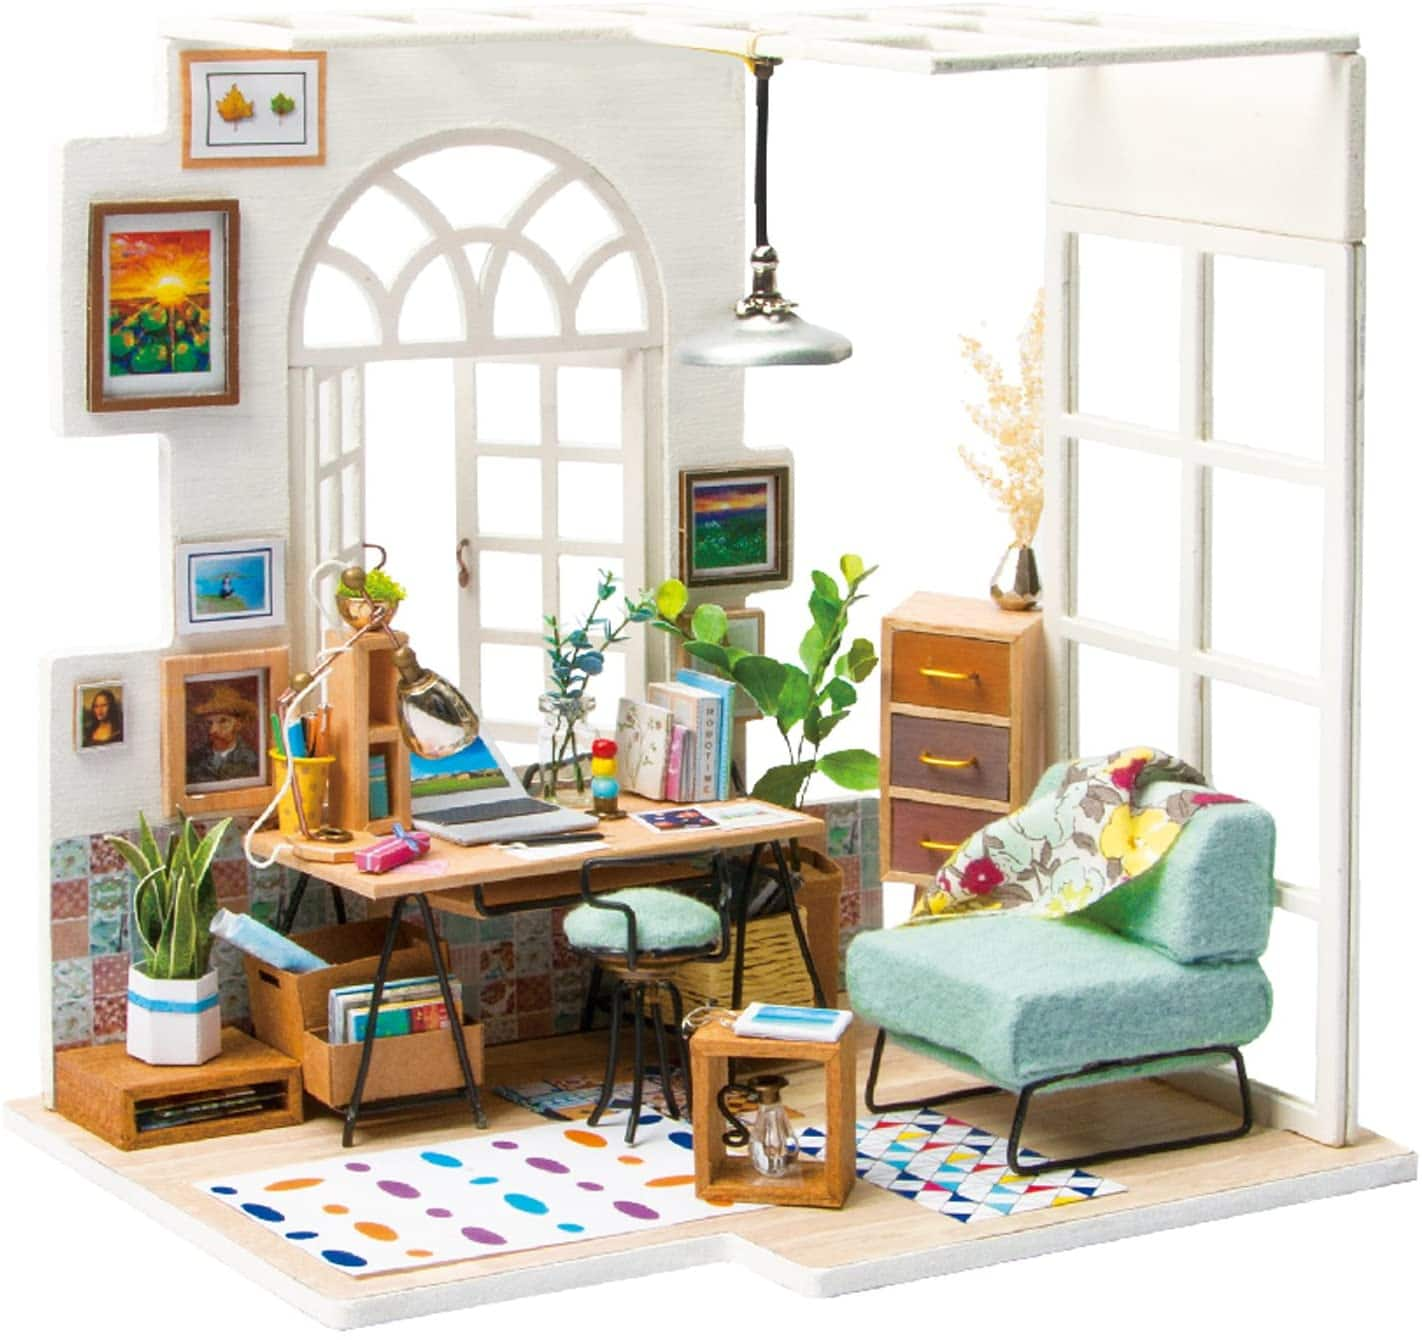 ROBOTIME Miniature Dollhouse Kit Decorations with Lights and Furnitures DIY House Craft Kits (SOHO TIME) 13.49 FS $13.49